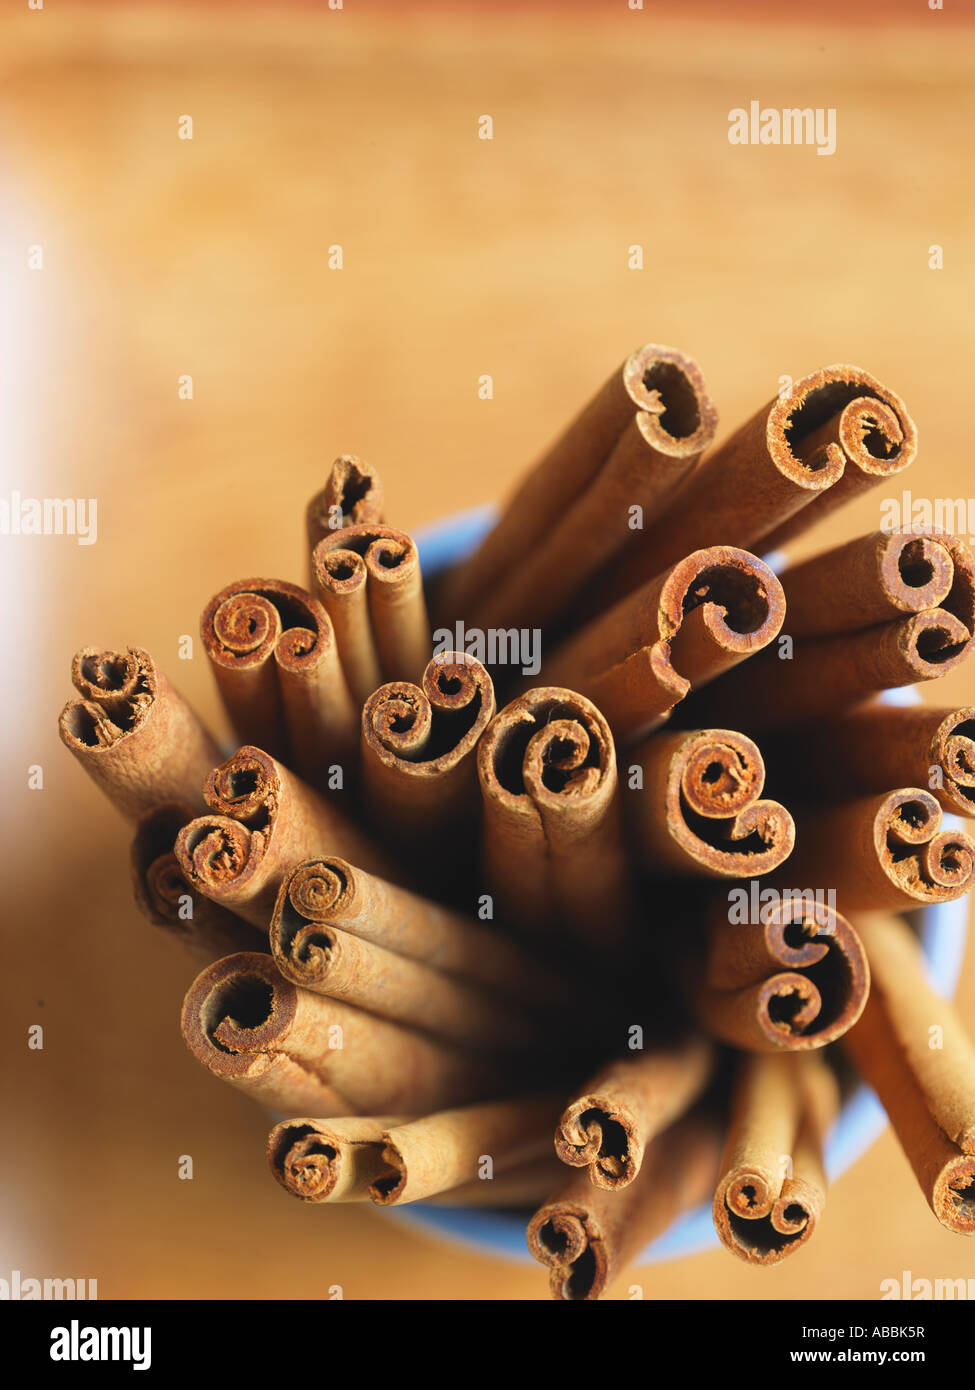 Cinnamon Sticks from above - Stock Image